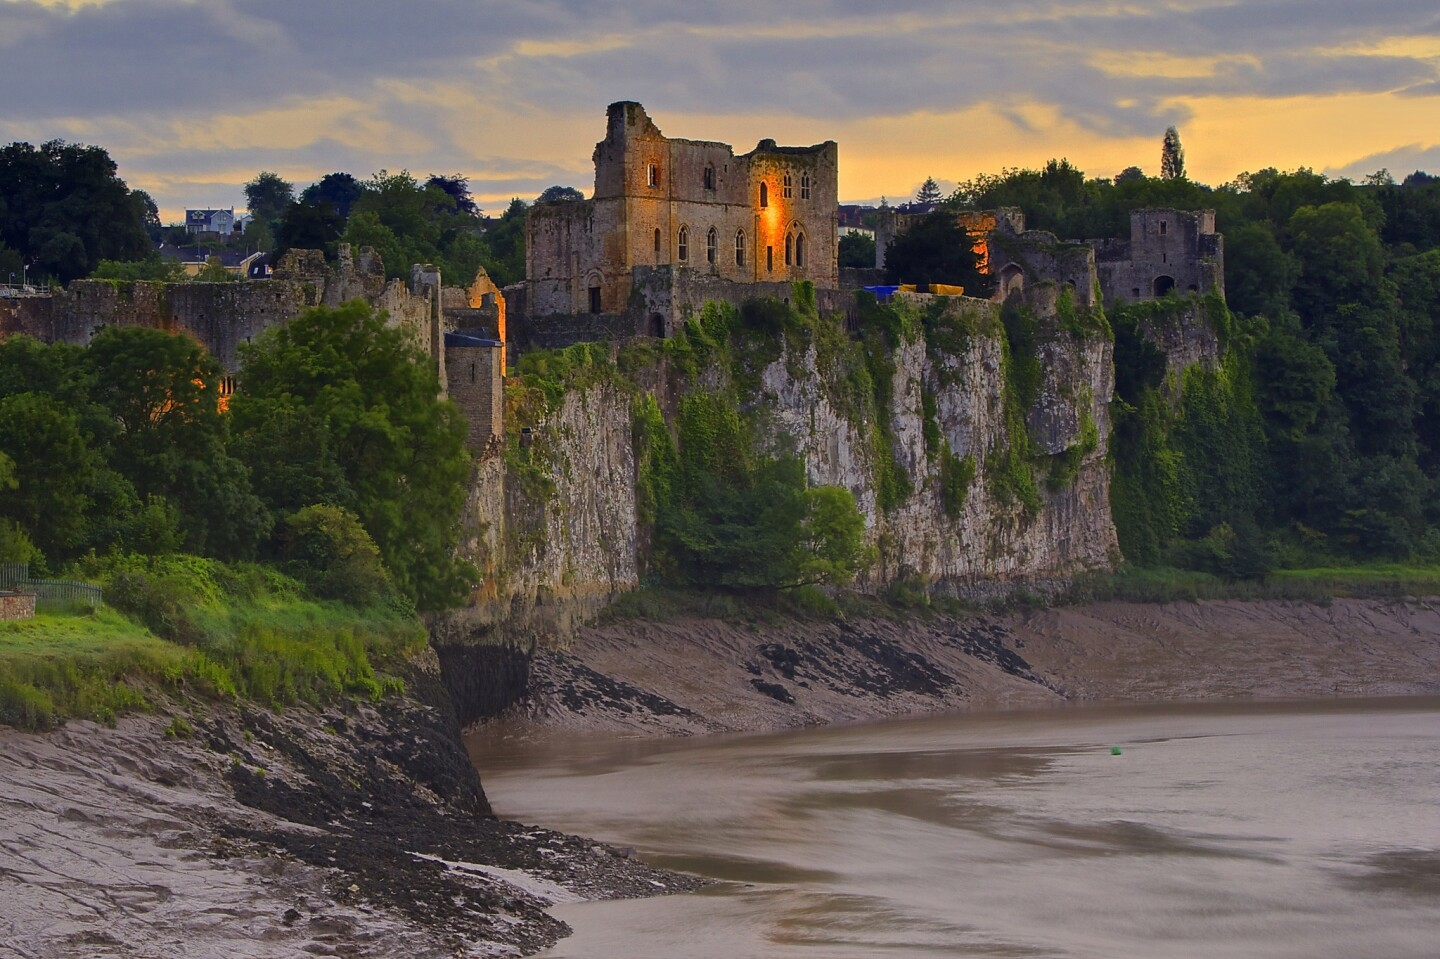 Castles in the United Kingdom